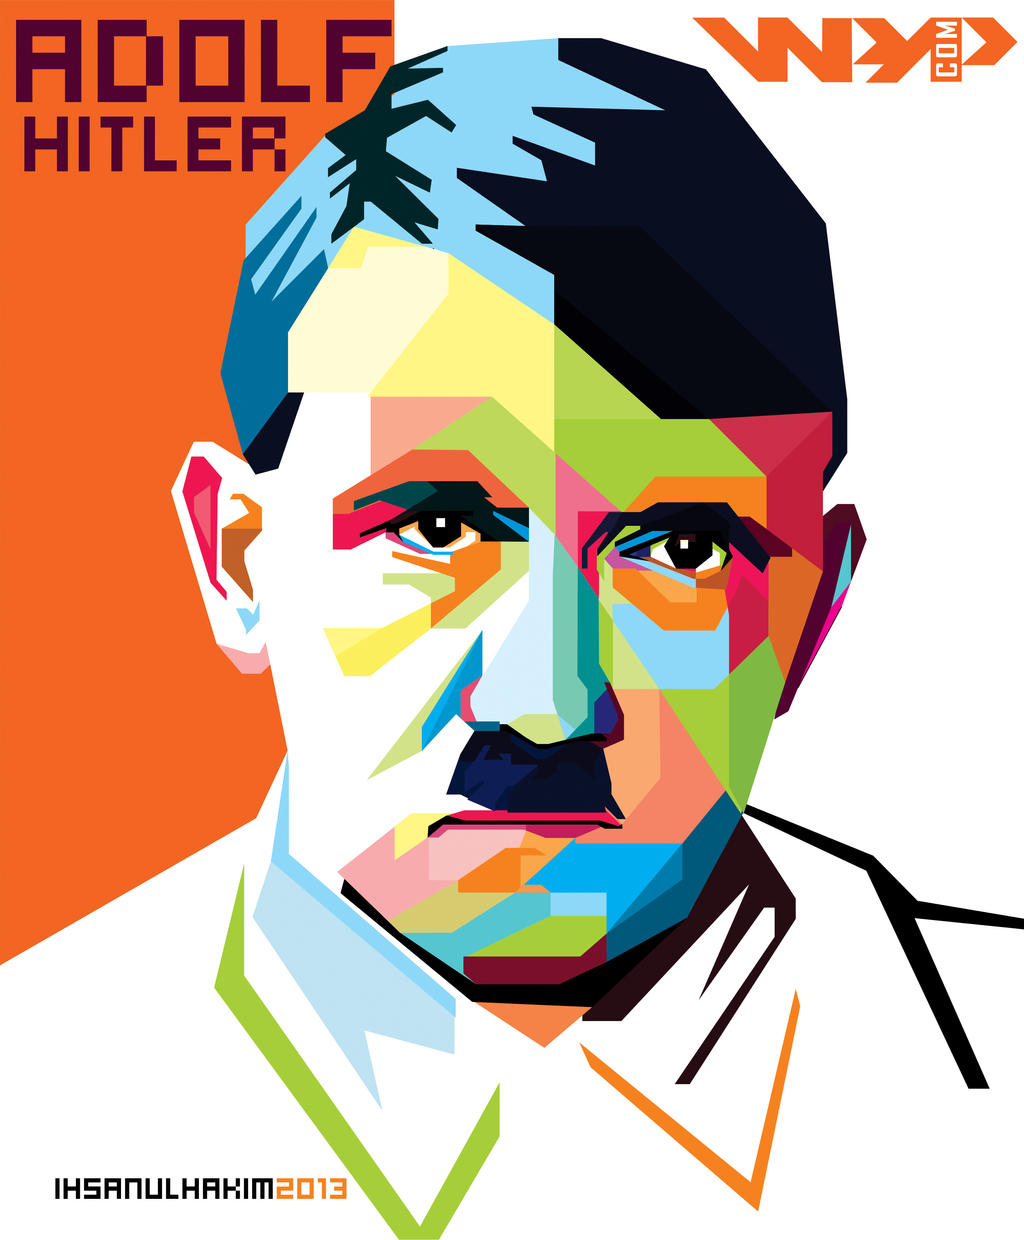 adolf hitler outline The first reprint of adolf hitler's mein kampf in germany since world war ii has proved a surprise bestseller, heading for its sixth print run, its publisher said tuesday.